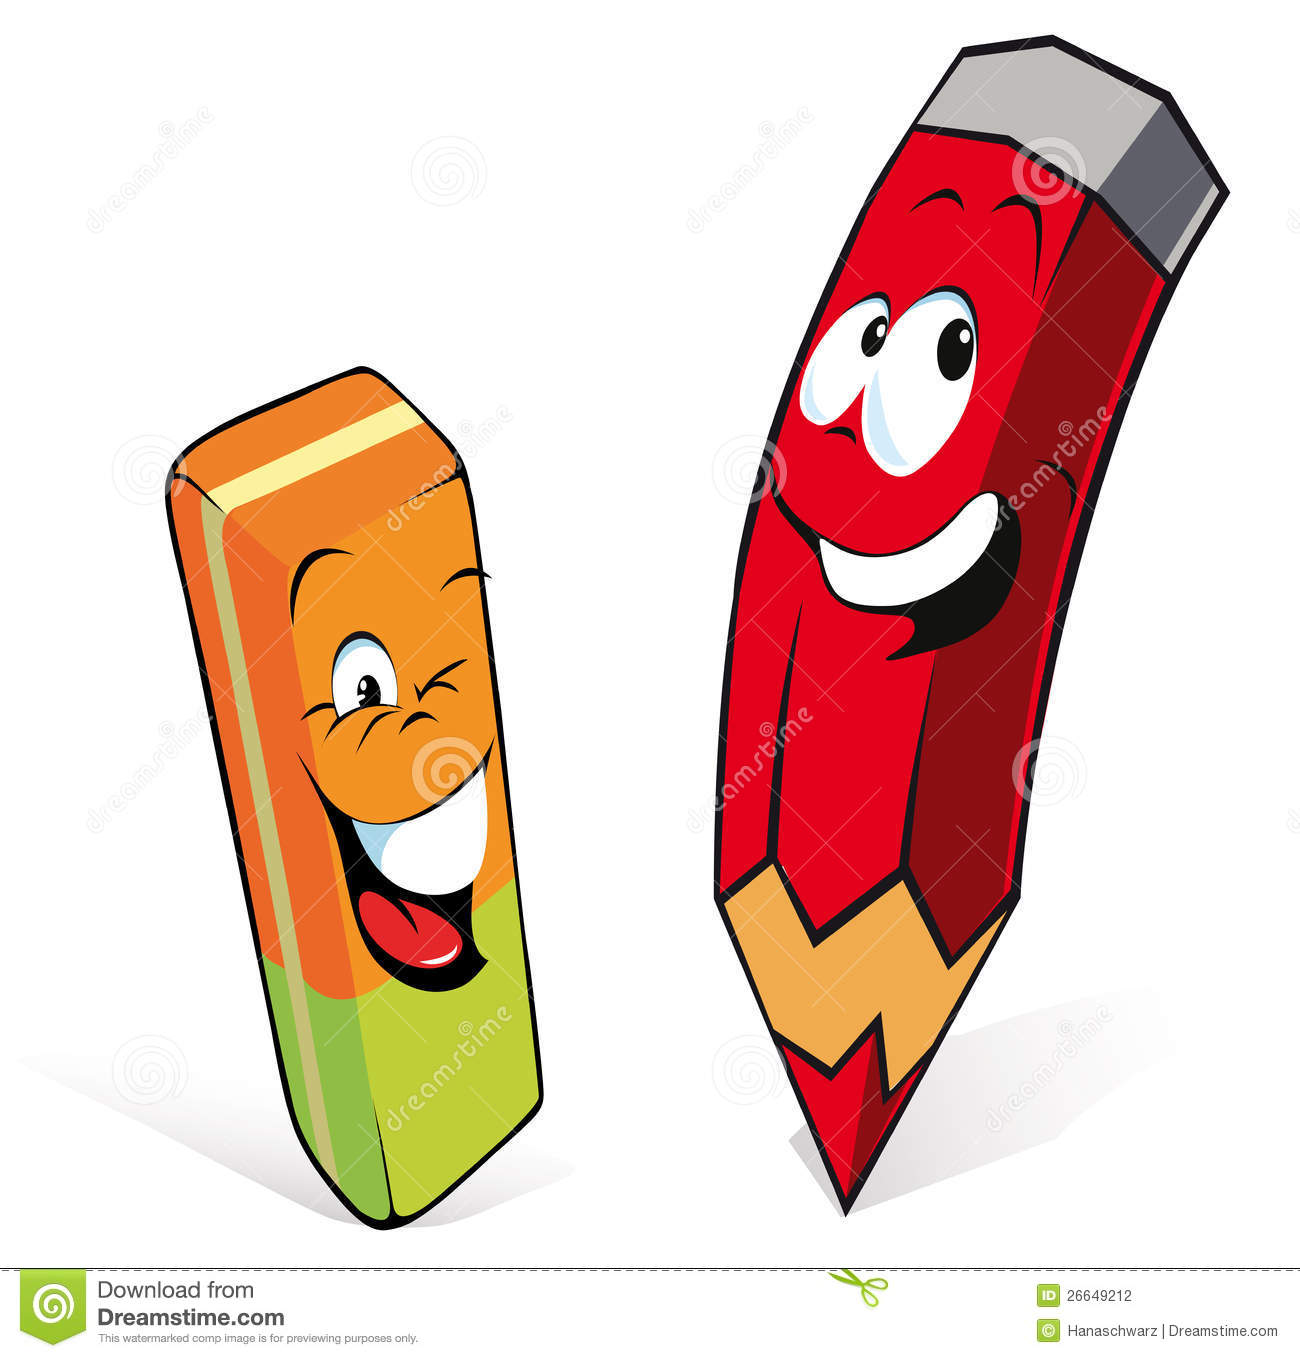 Cartoon illustration of pencil and eraser or rubber, white background.